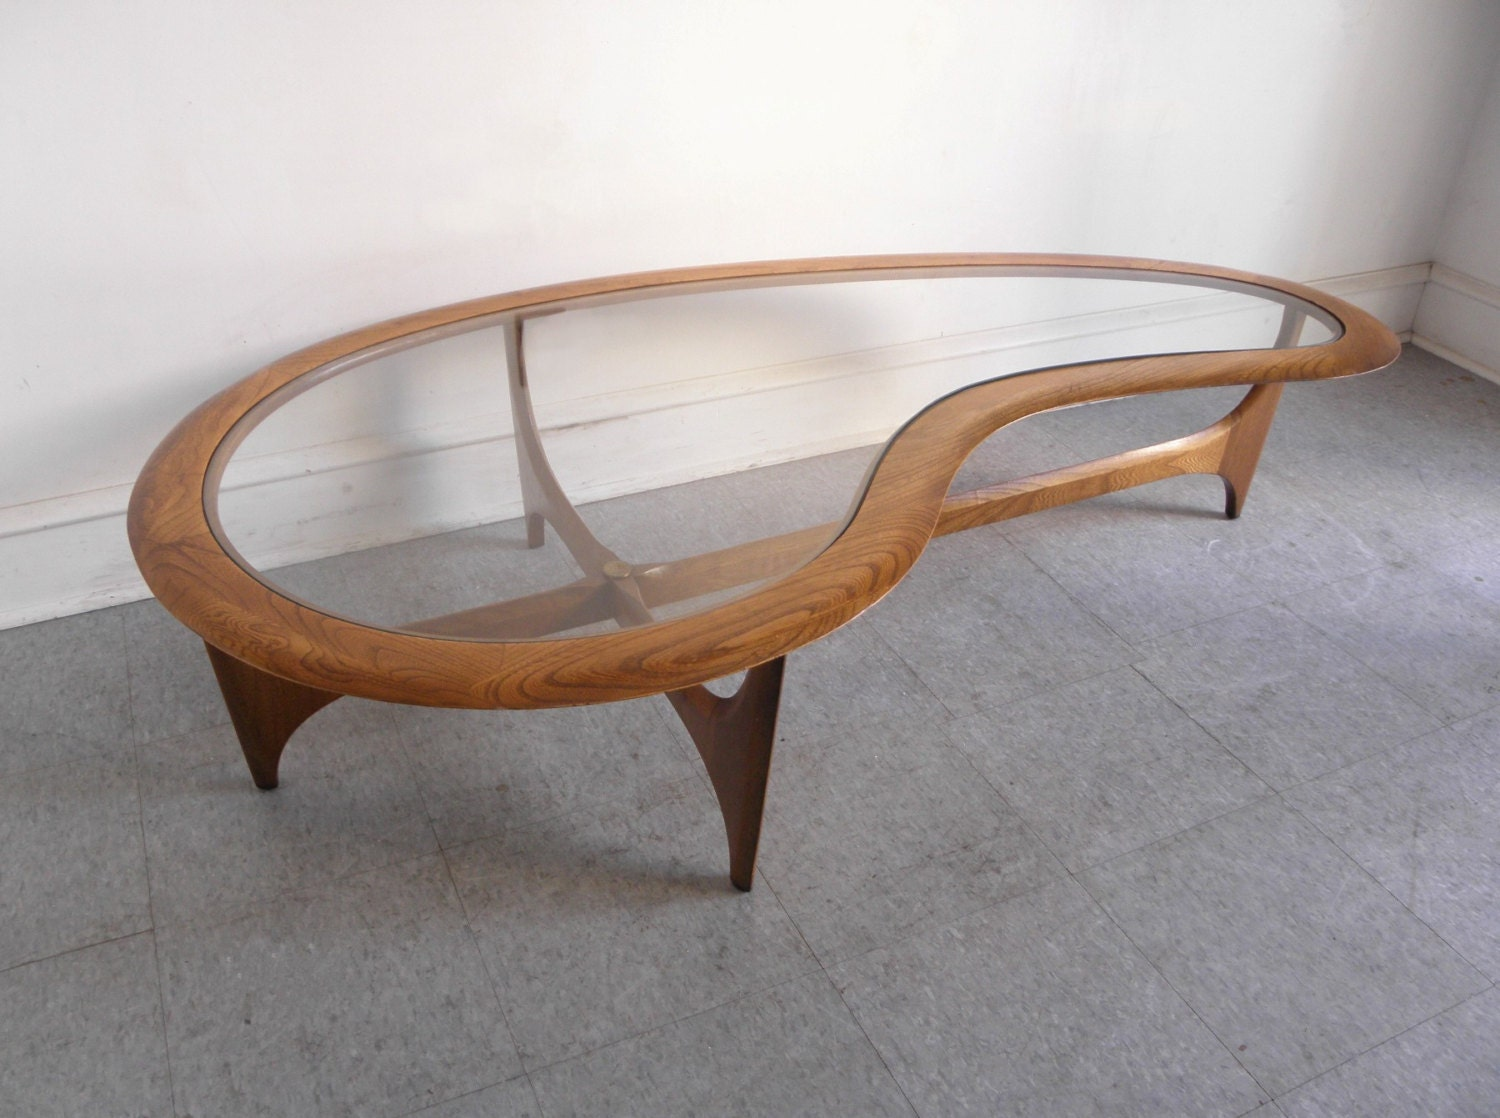 ... Lane Mid Century Modern kidney shaped walnut and glass coffee cocktail  table. 🔎zoom - For Paul Lane Mid Century Modern Kidney Shaped Walnut And